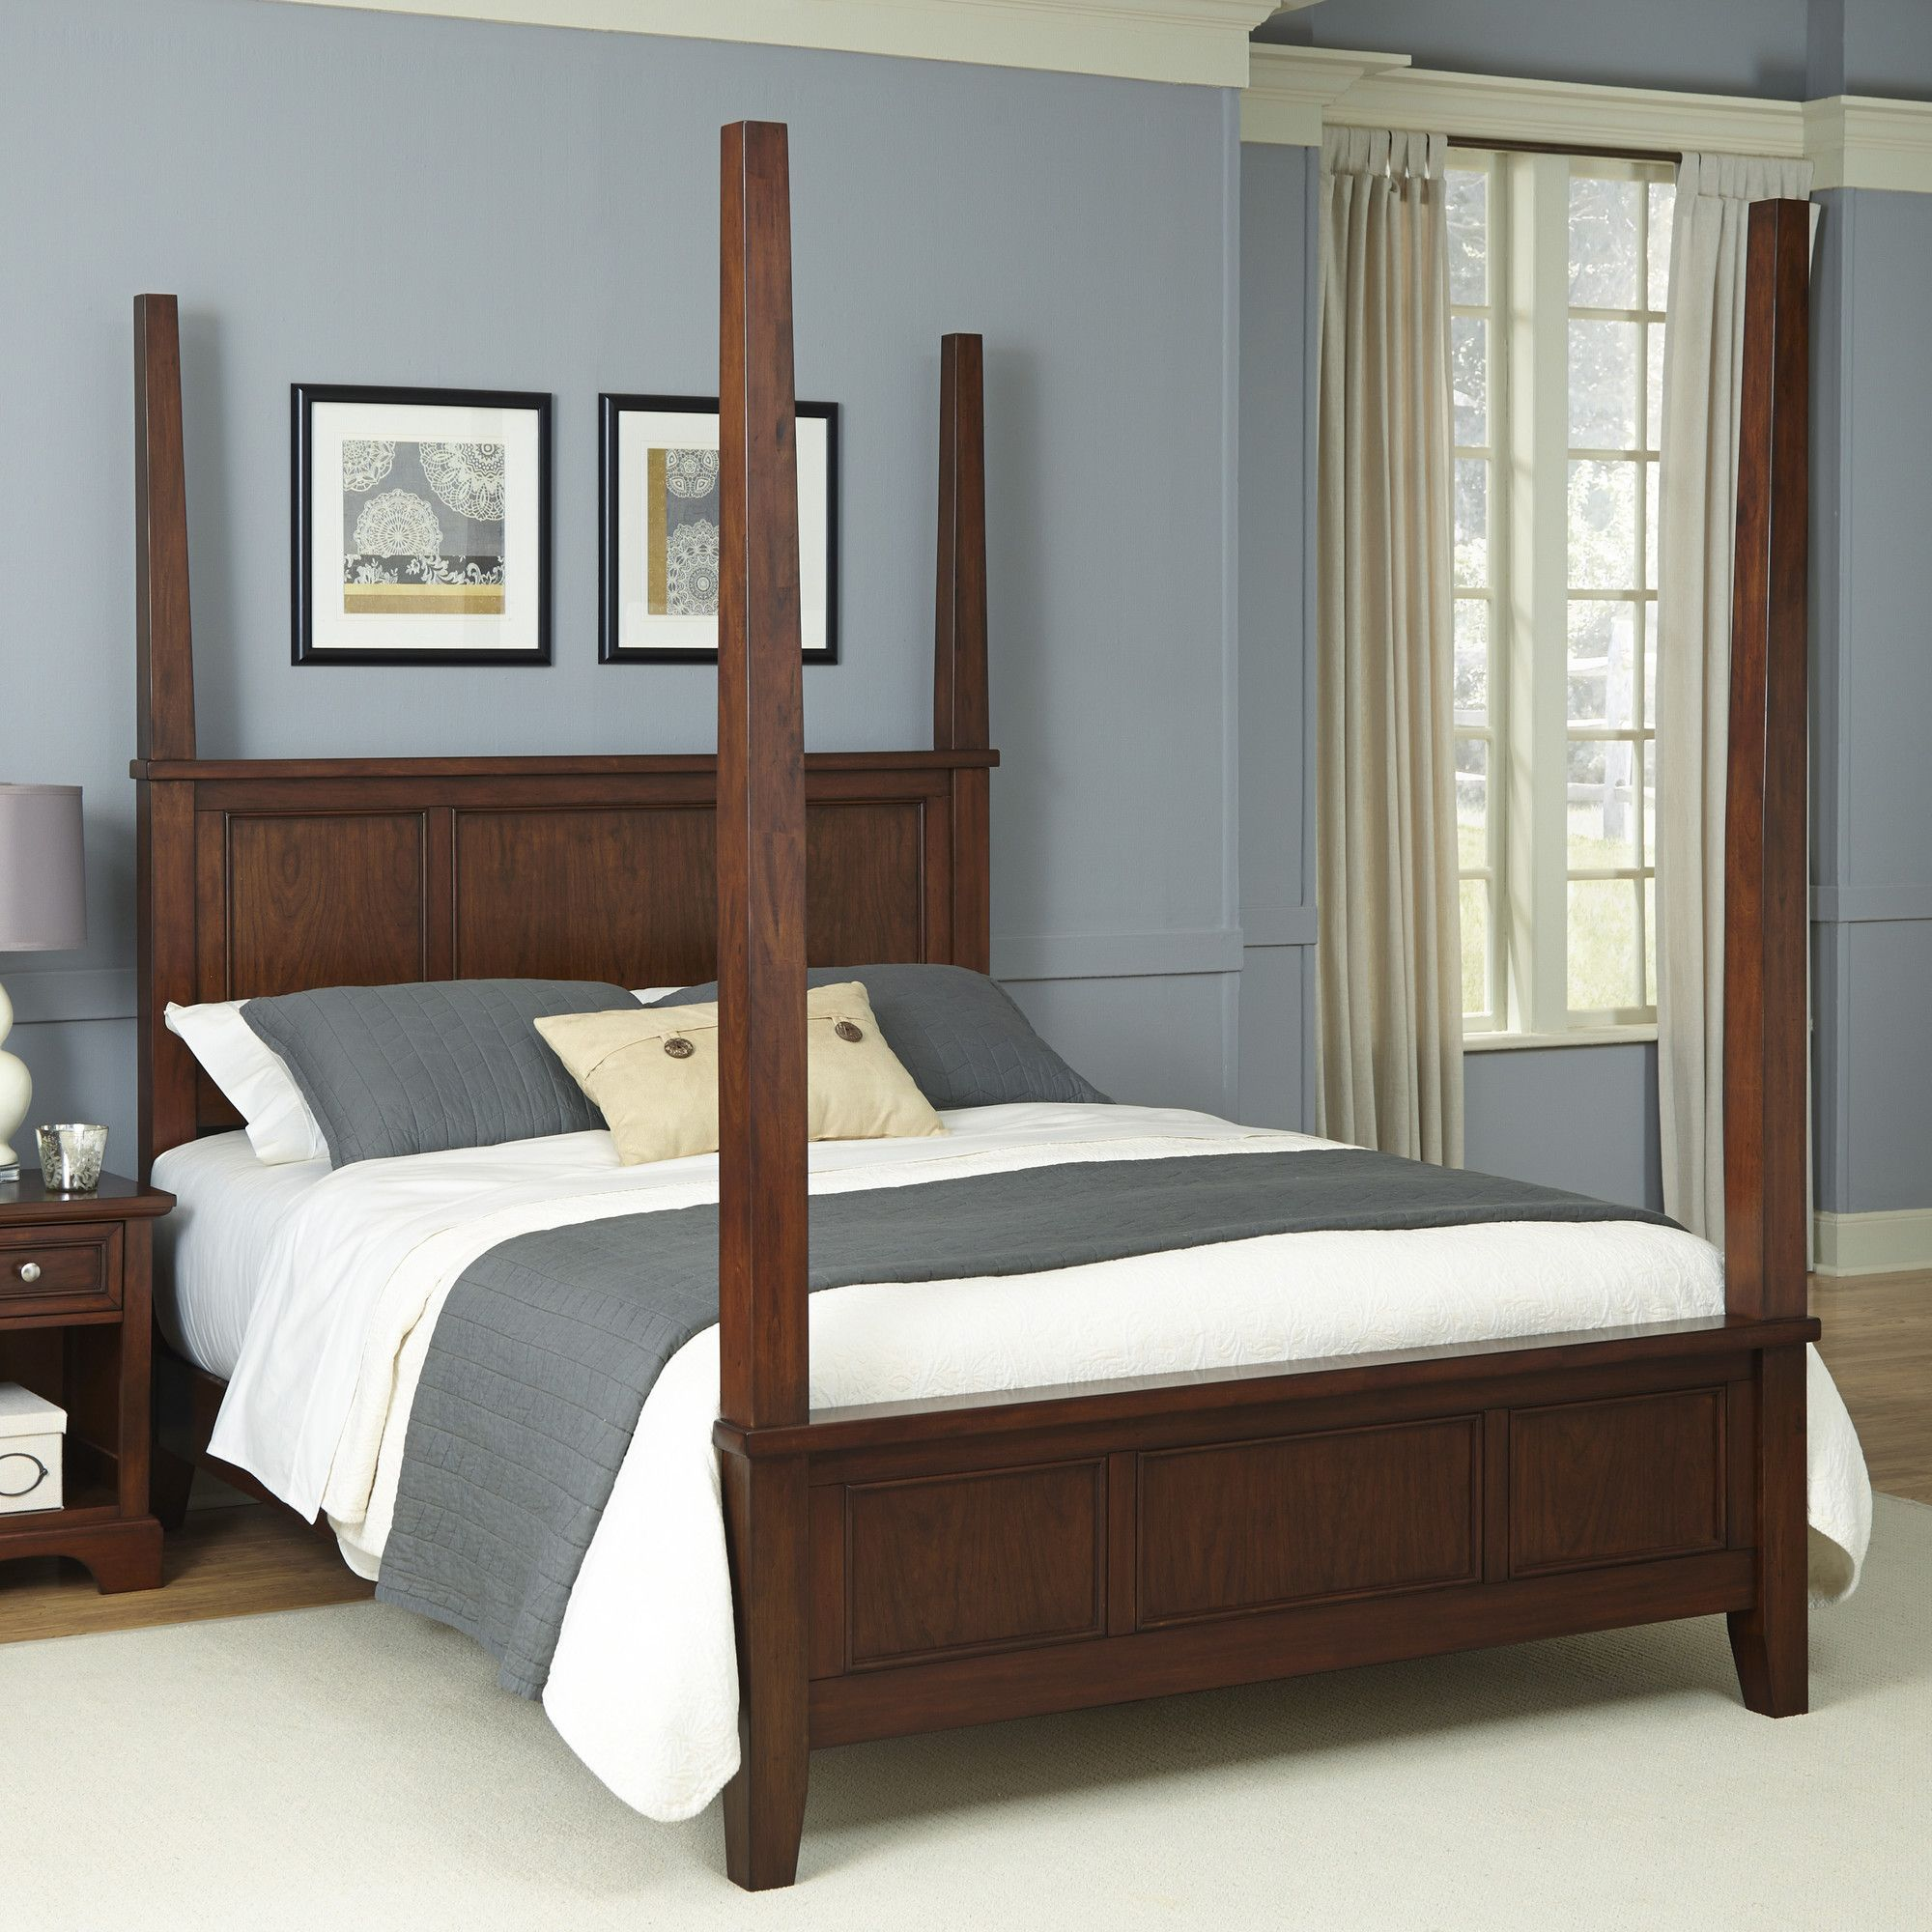 Borden Four poster Bed